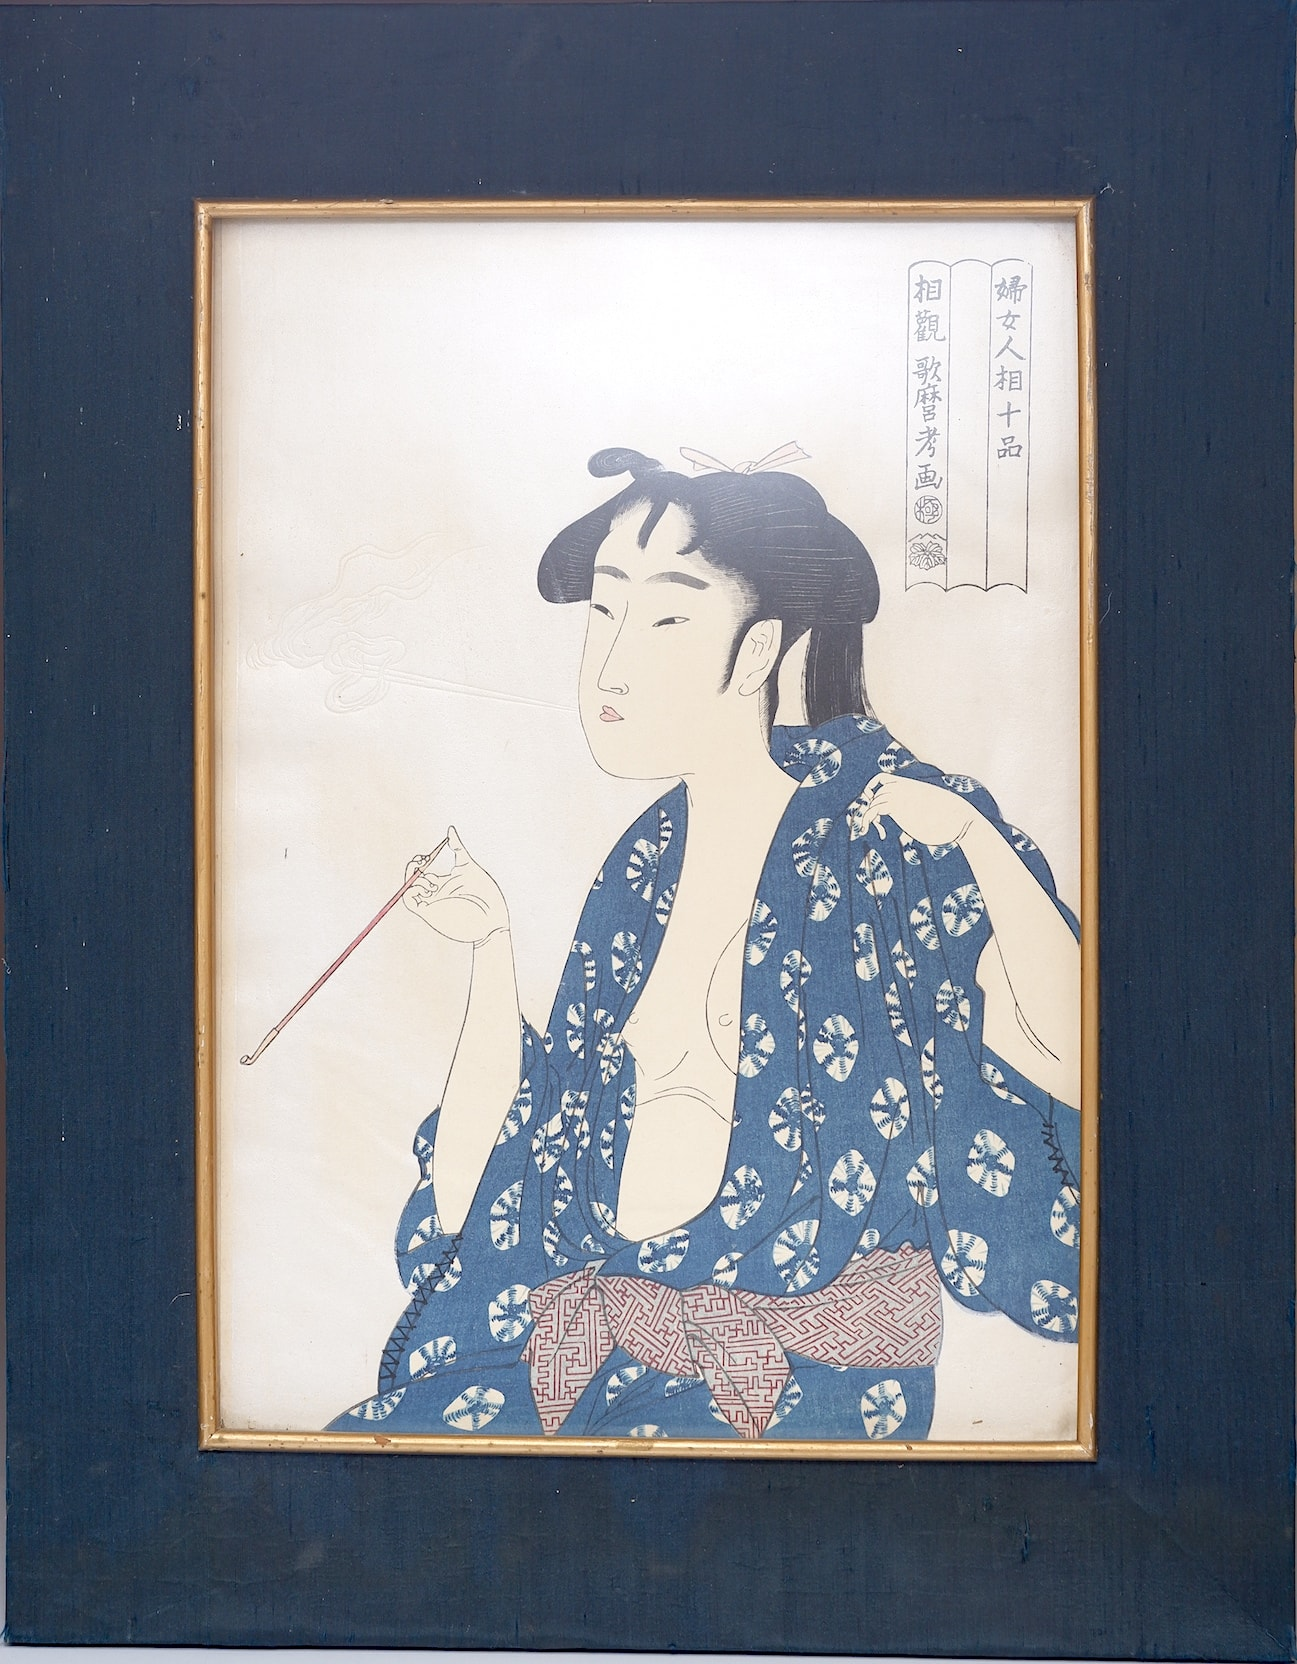 'Kitagawa Utamaro (Japanese 1753-1806) Woodblock, 20th Century Edition'